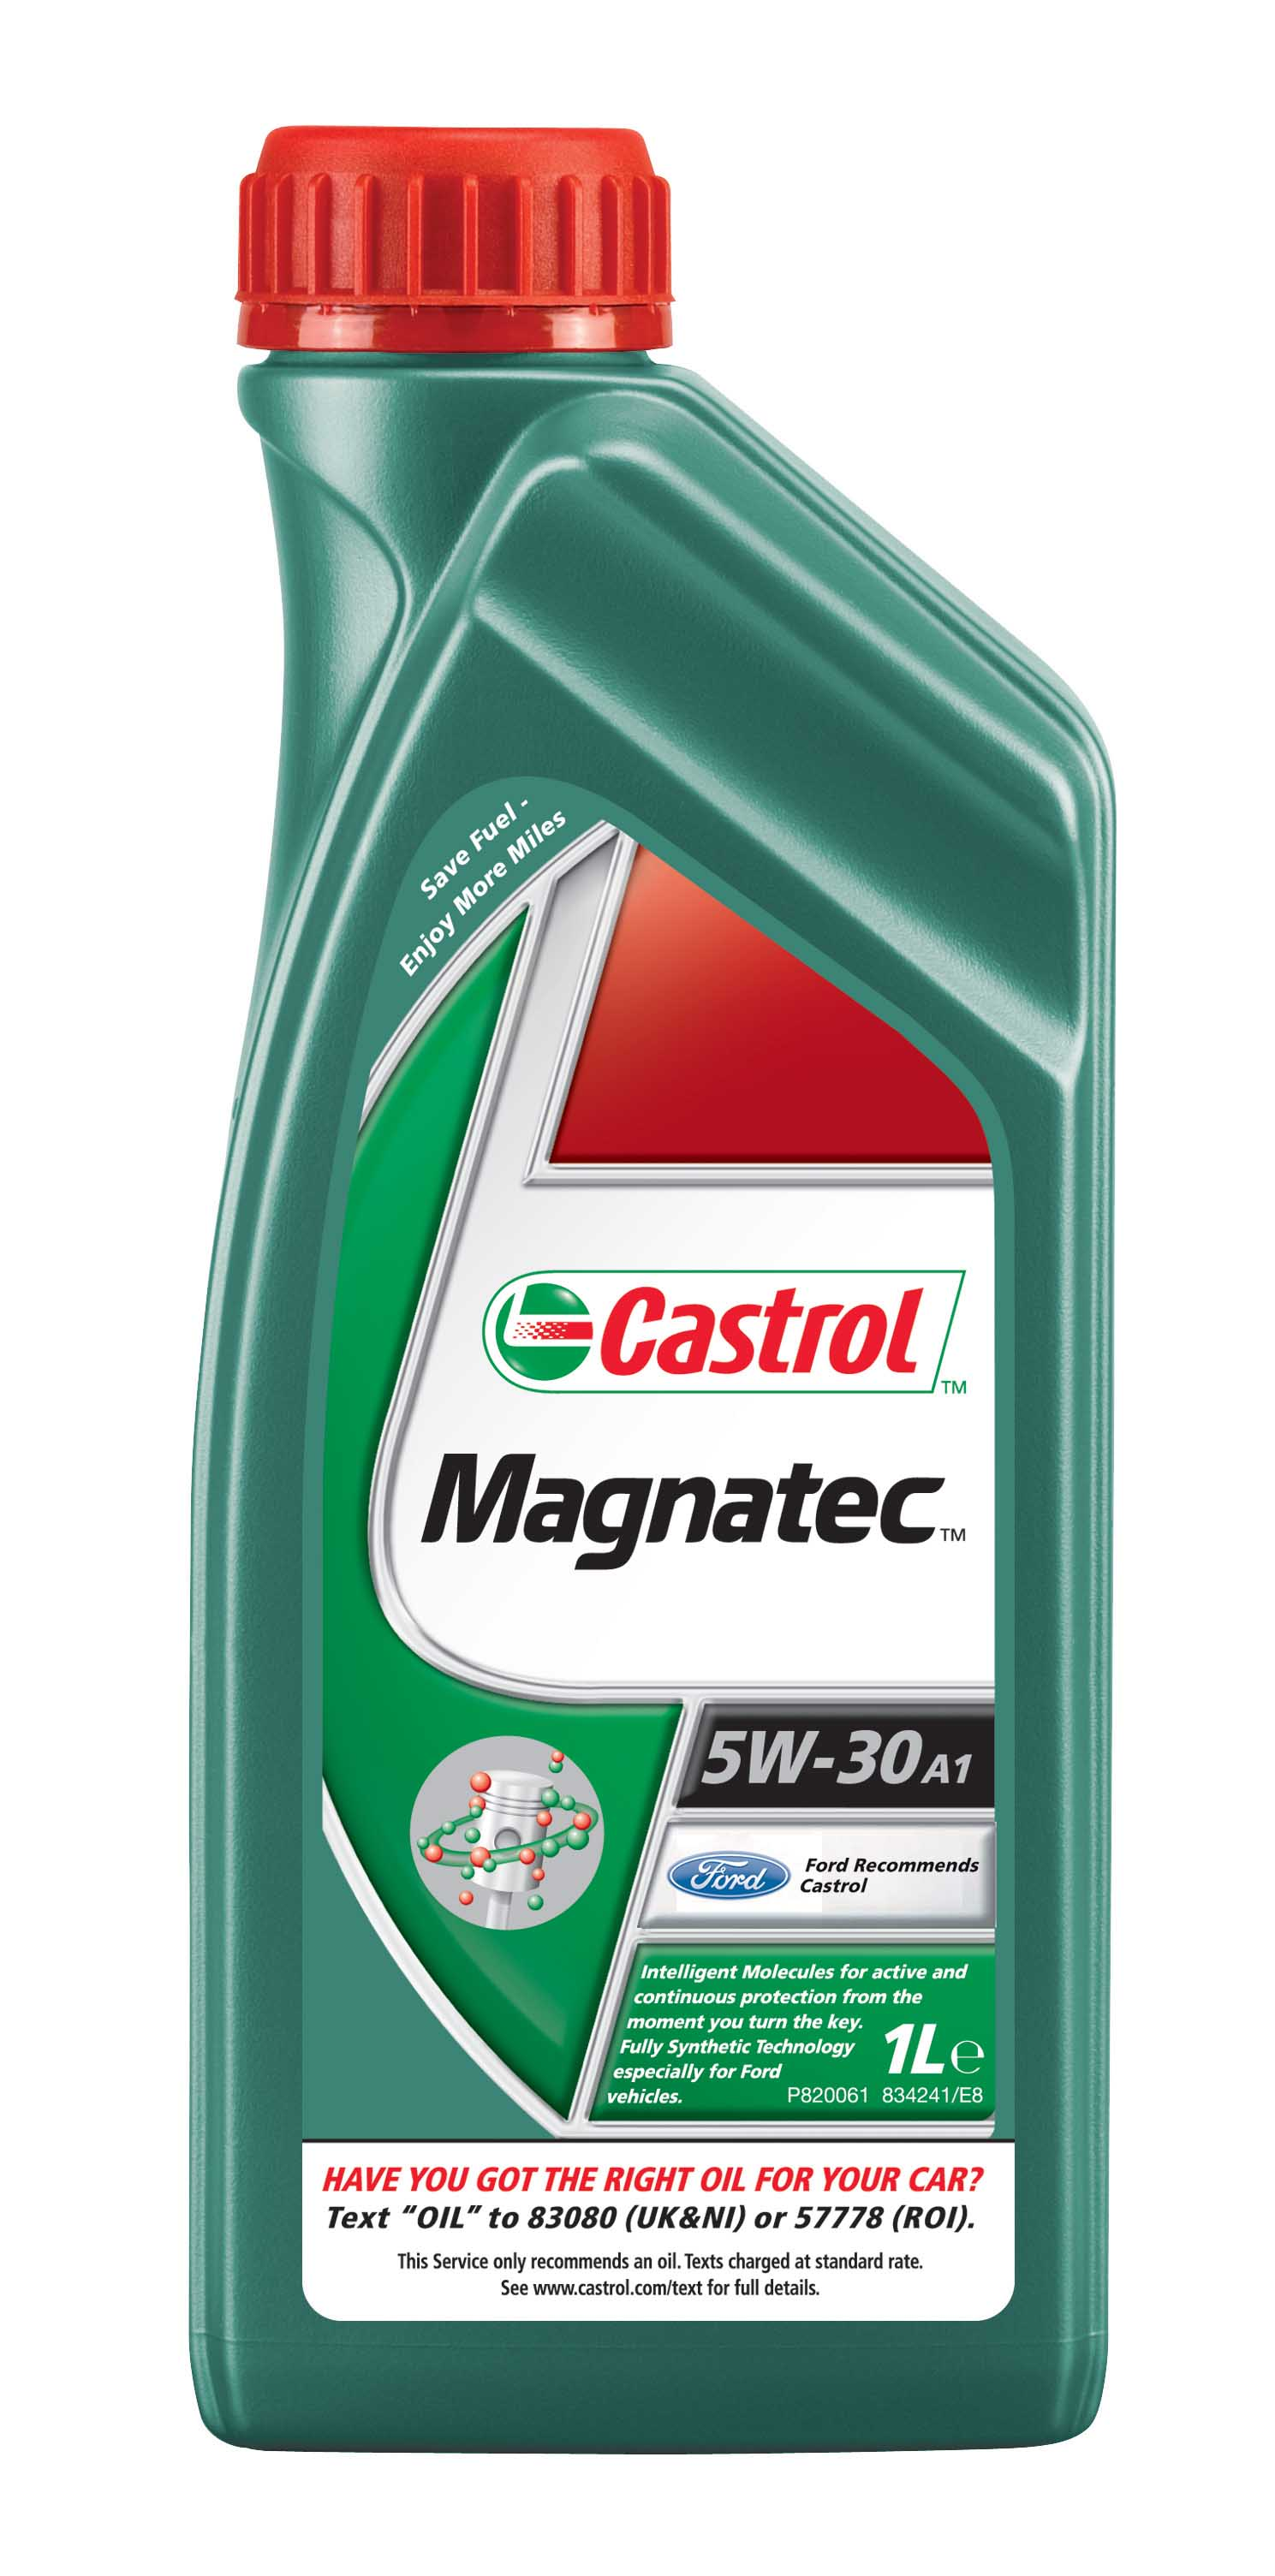 Castrol magnetic 5w 30 motor engine oil cold start 1 litre for What weight motor oil should i use